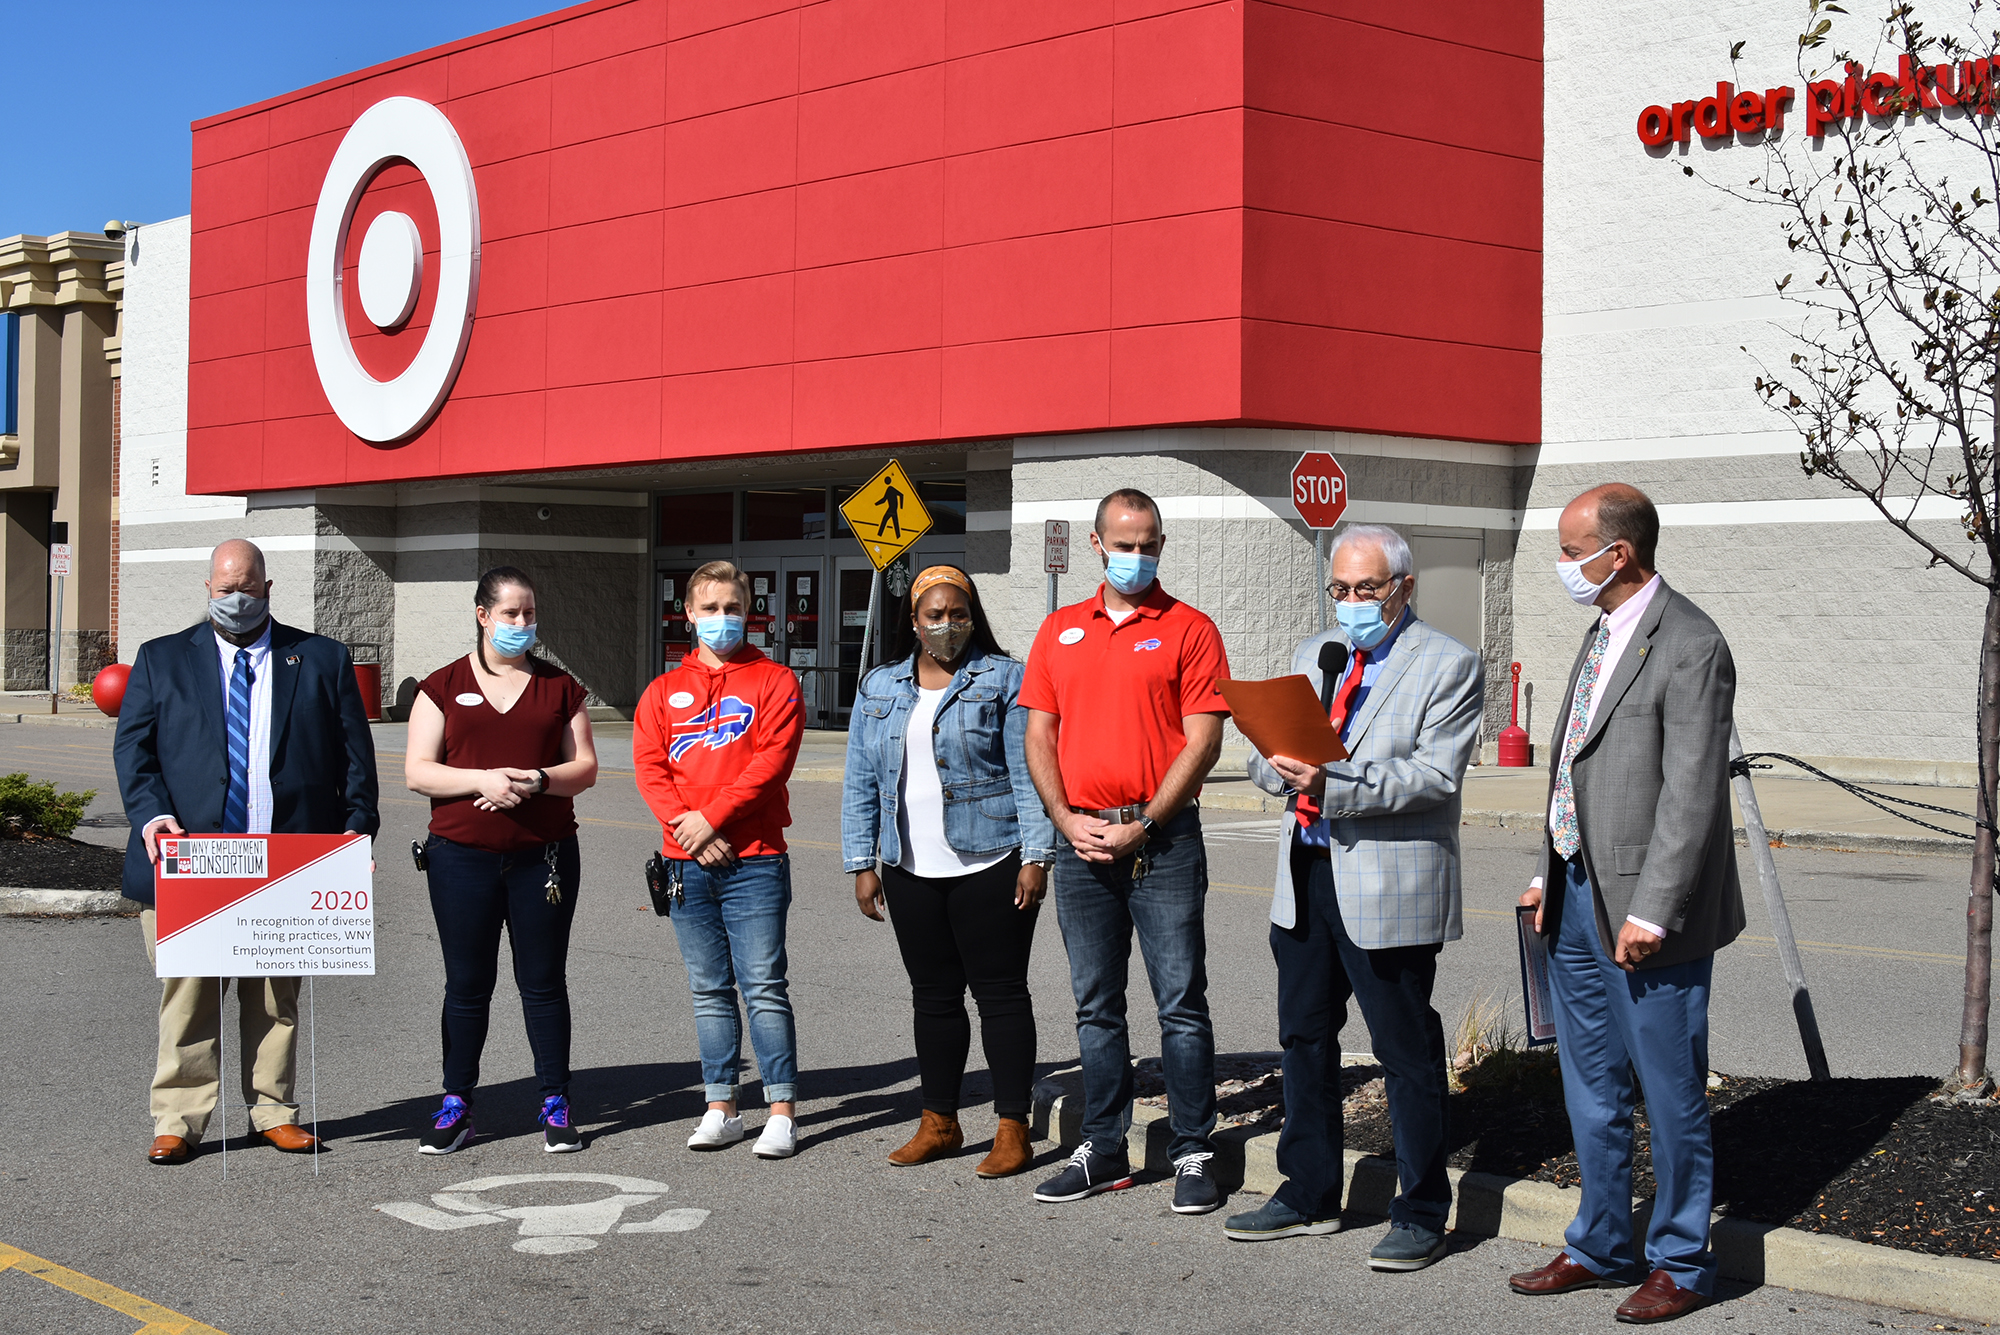 Members of the WNY Employment Consortium recognized the staff at Target for being an inclusive employer.